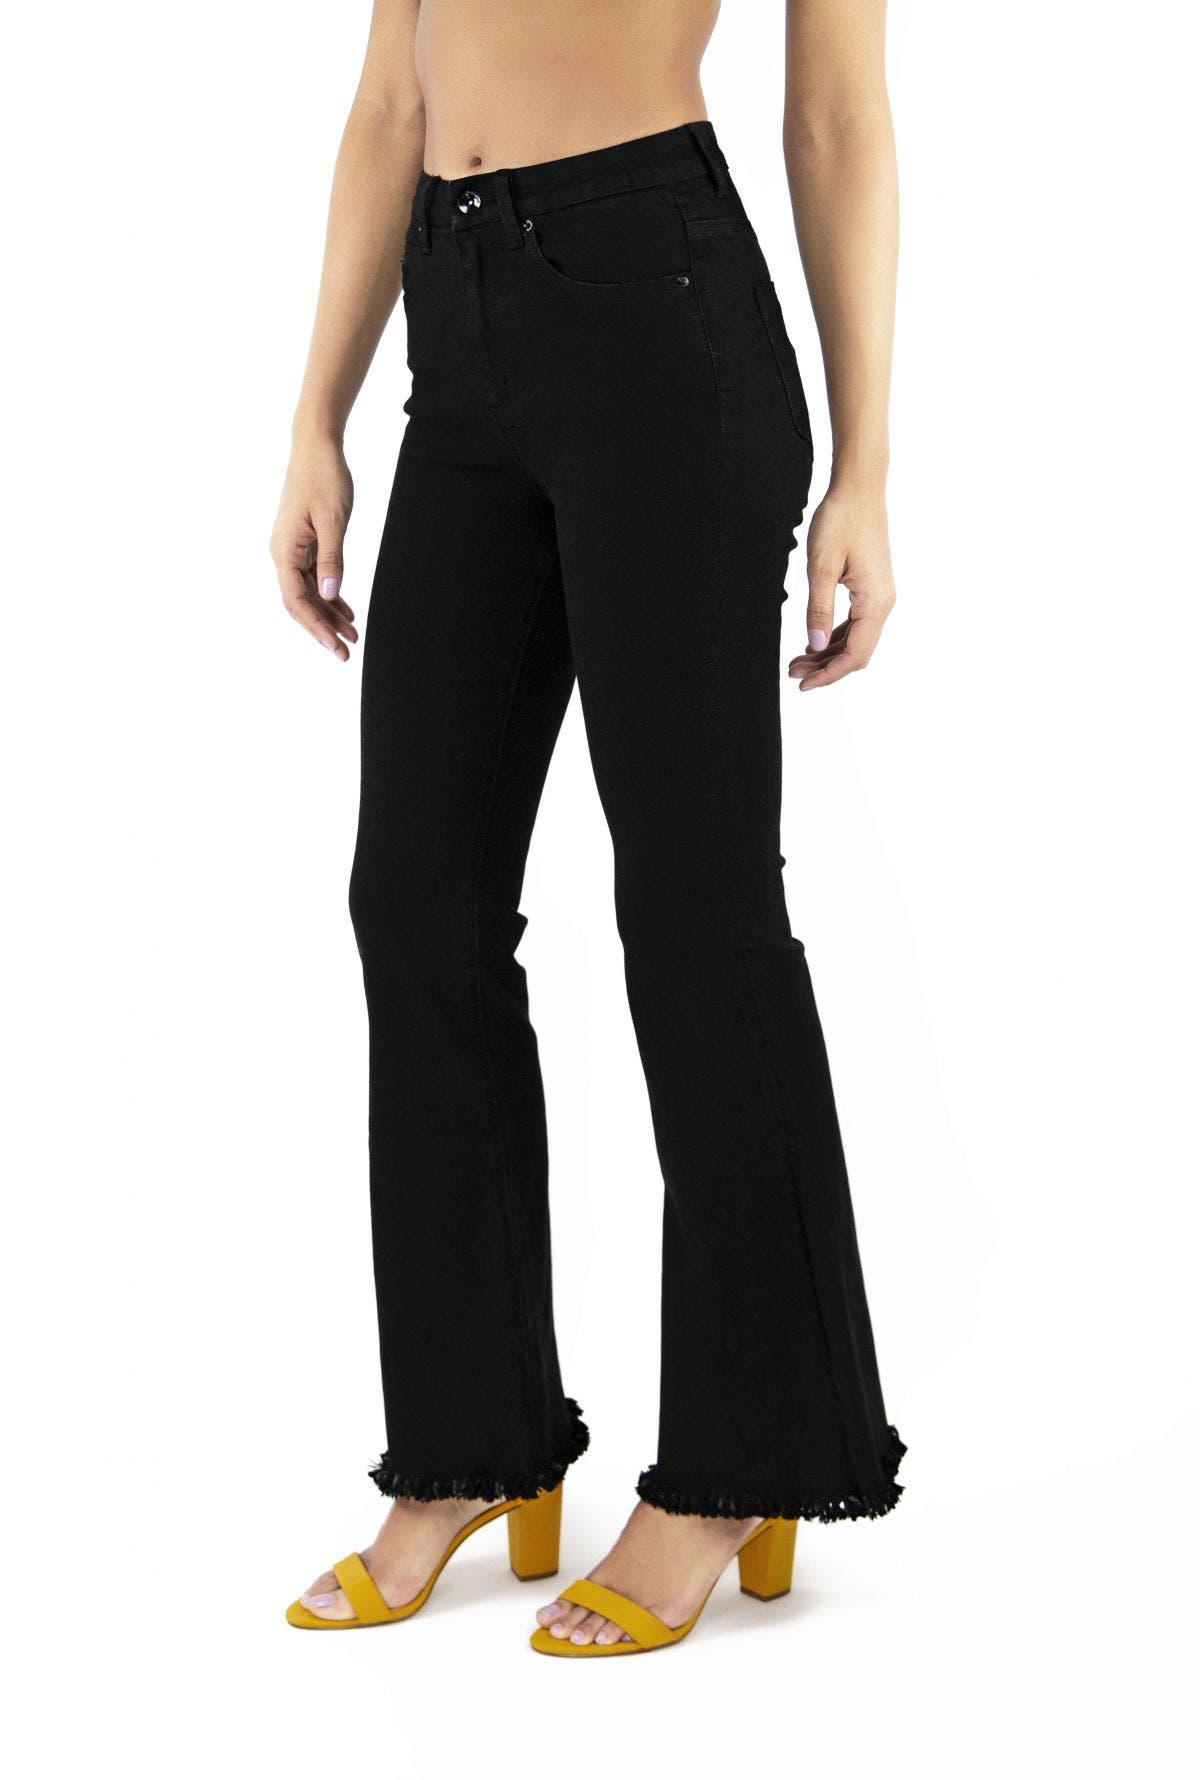 "High Rise Sexy Flare 31"" Inseam"